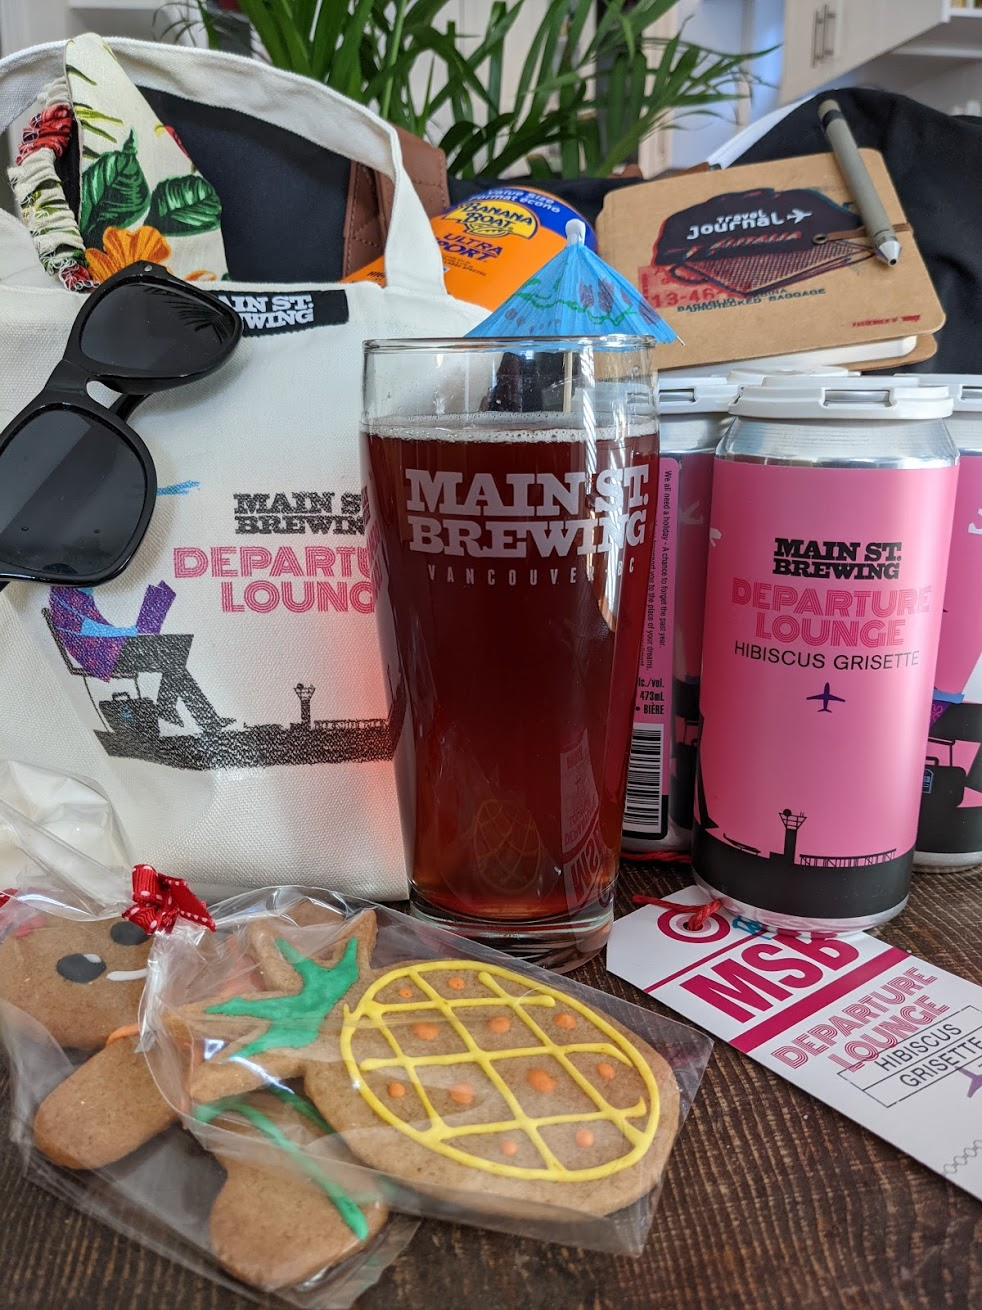 Beer of the Month: Main Street Brewing's Departure Lounge Grisette